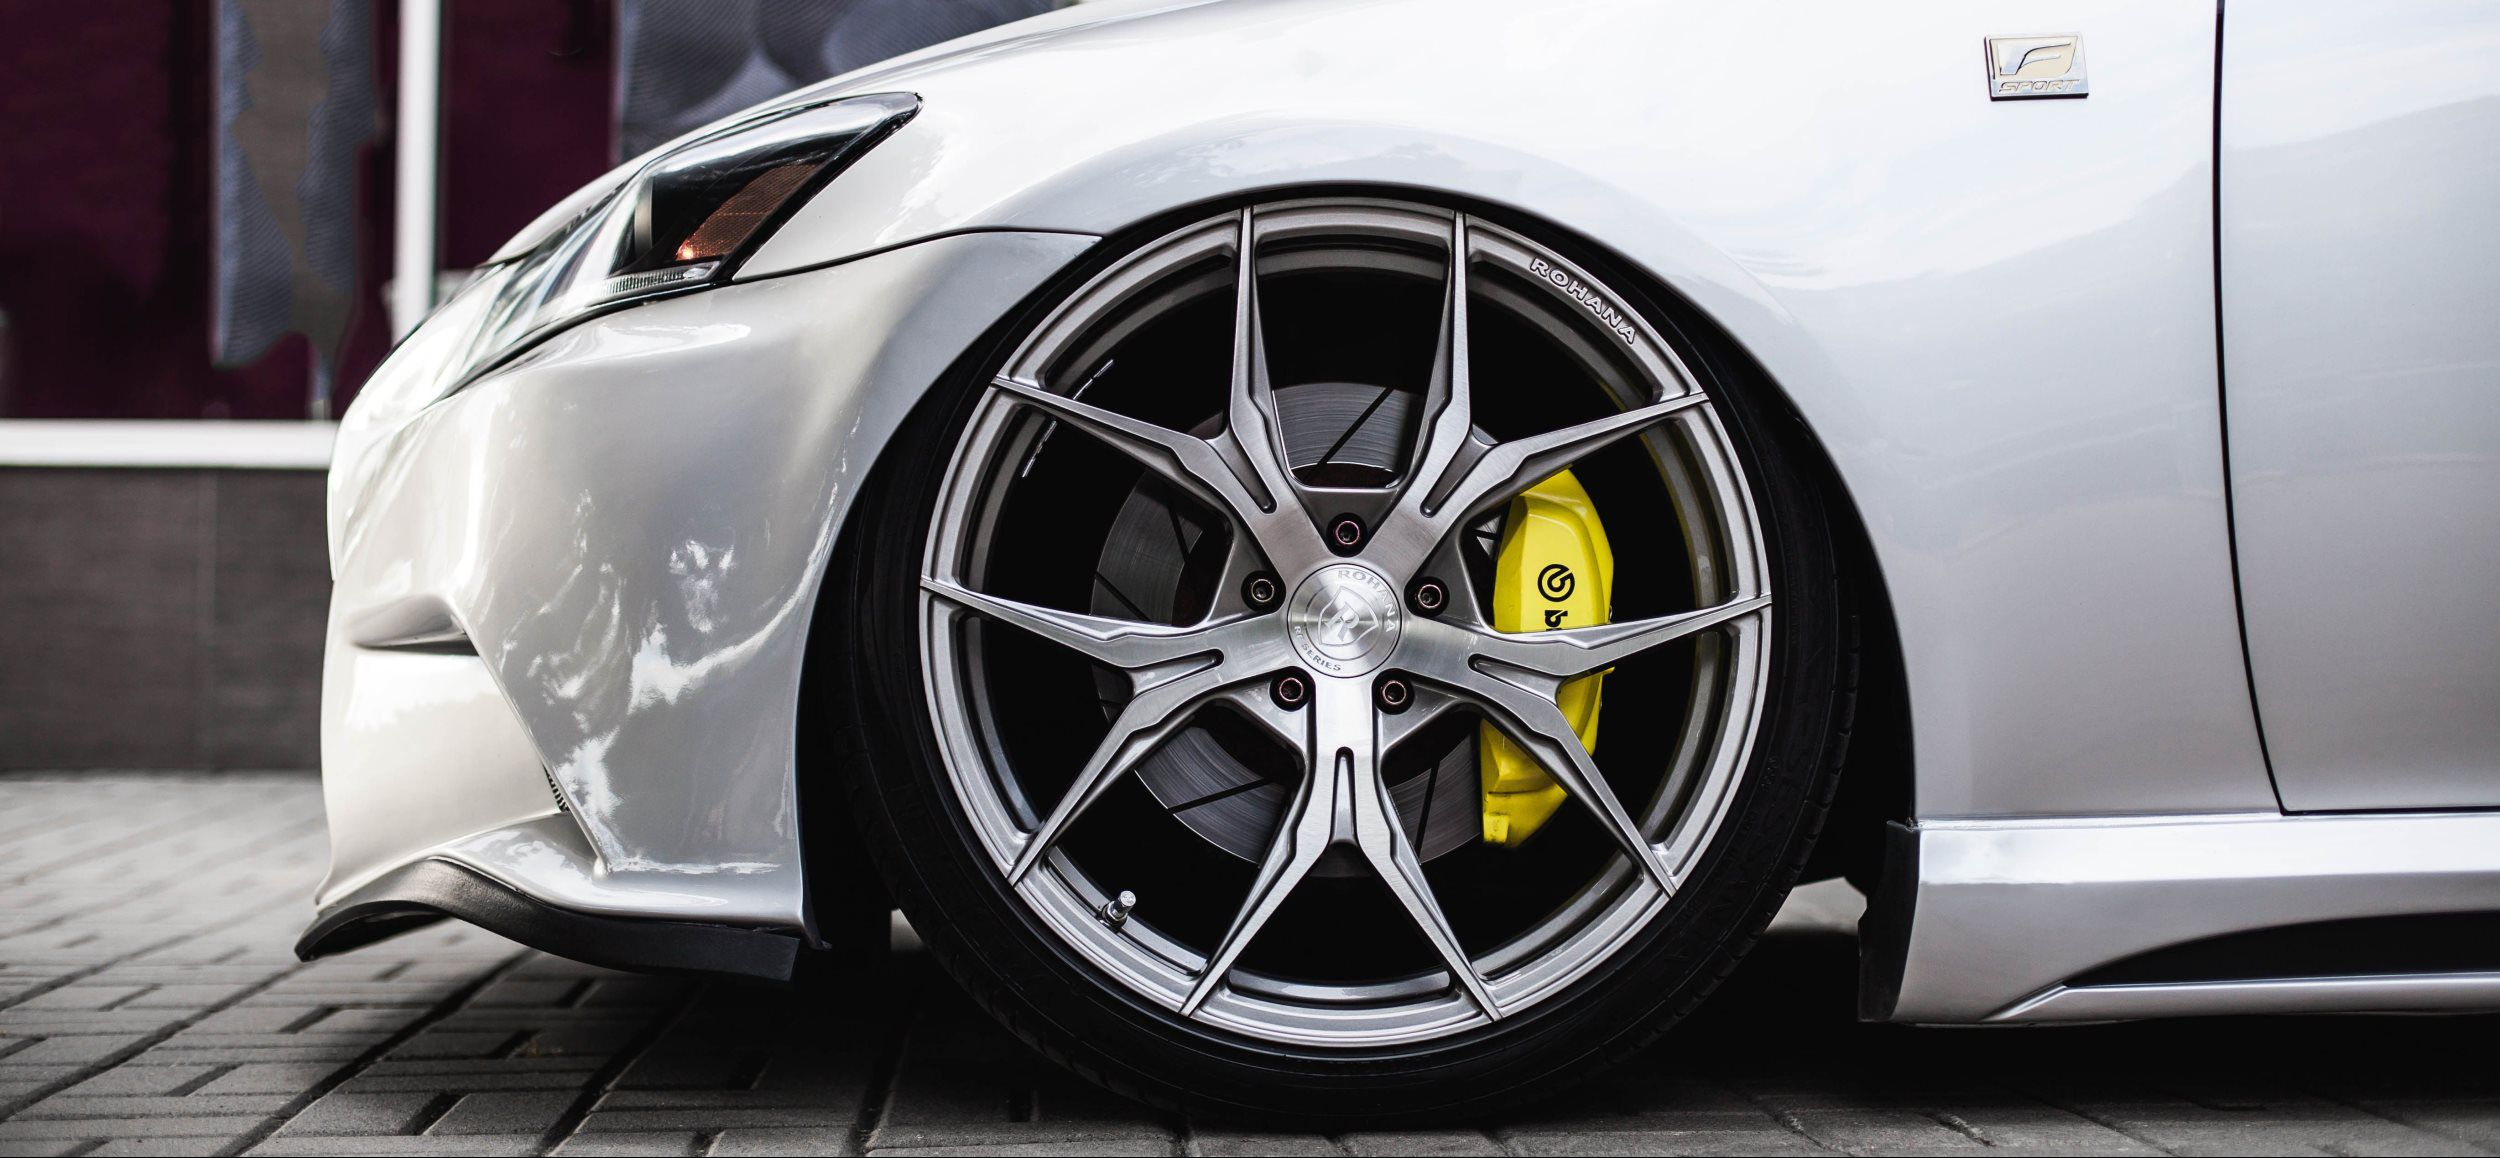 Image of Rims and Tire